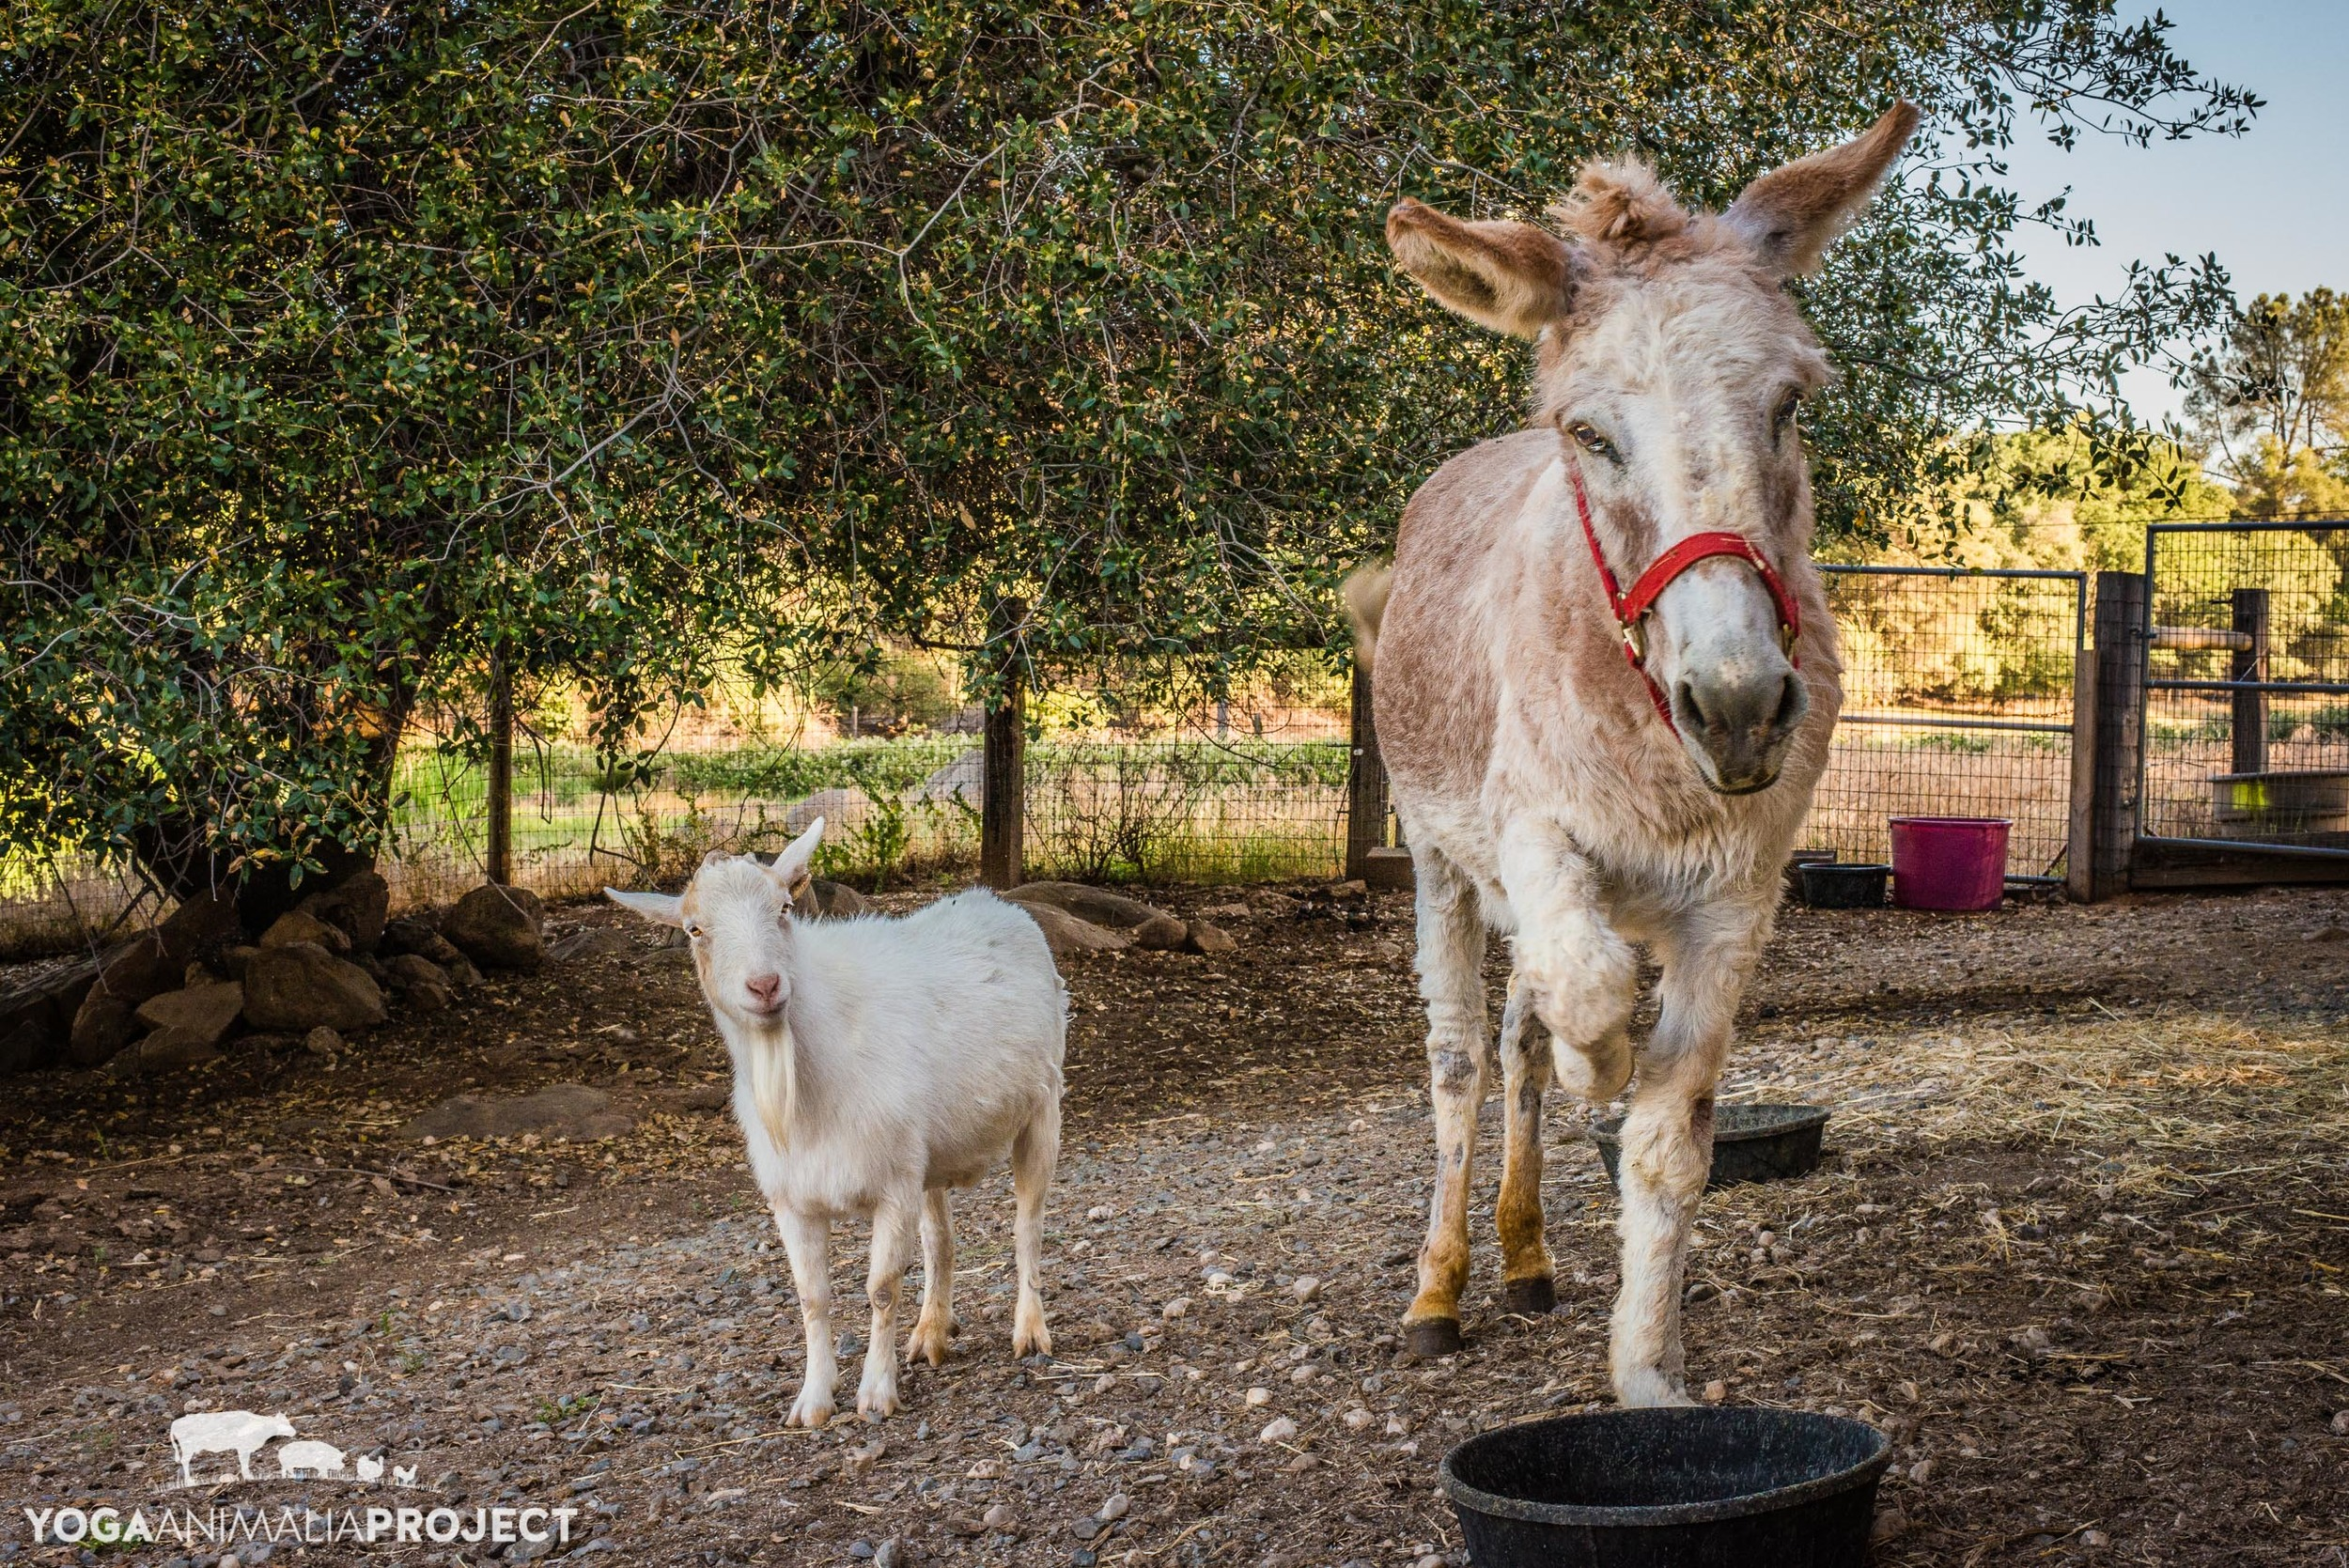 Mr. G and Jellybean, Animal Place, Grass Valley, California